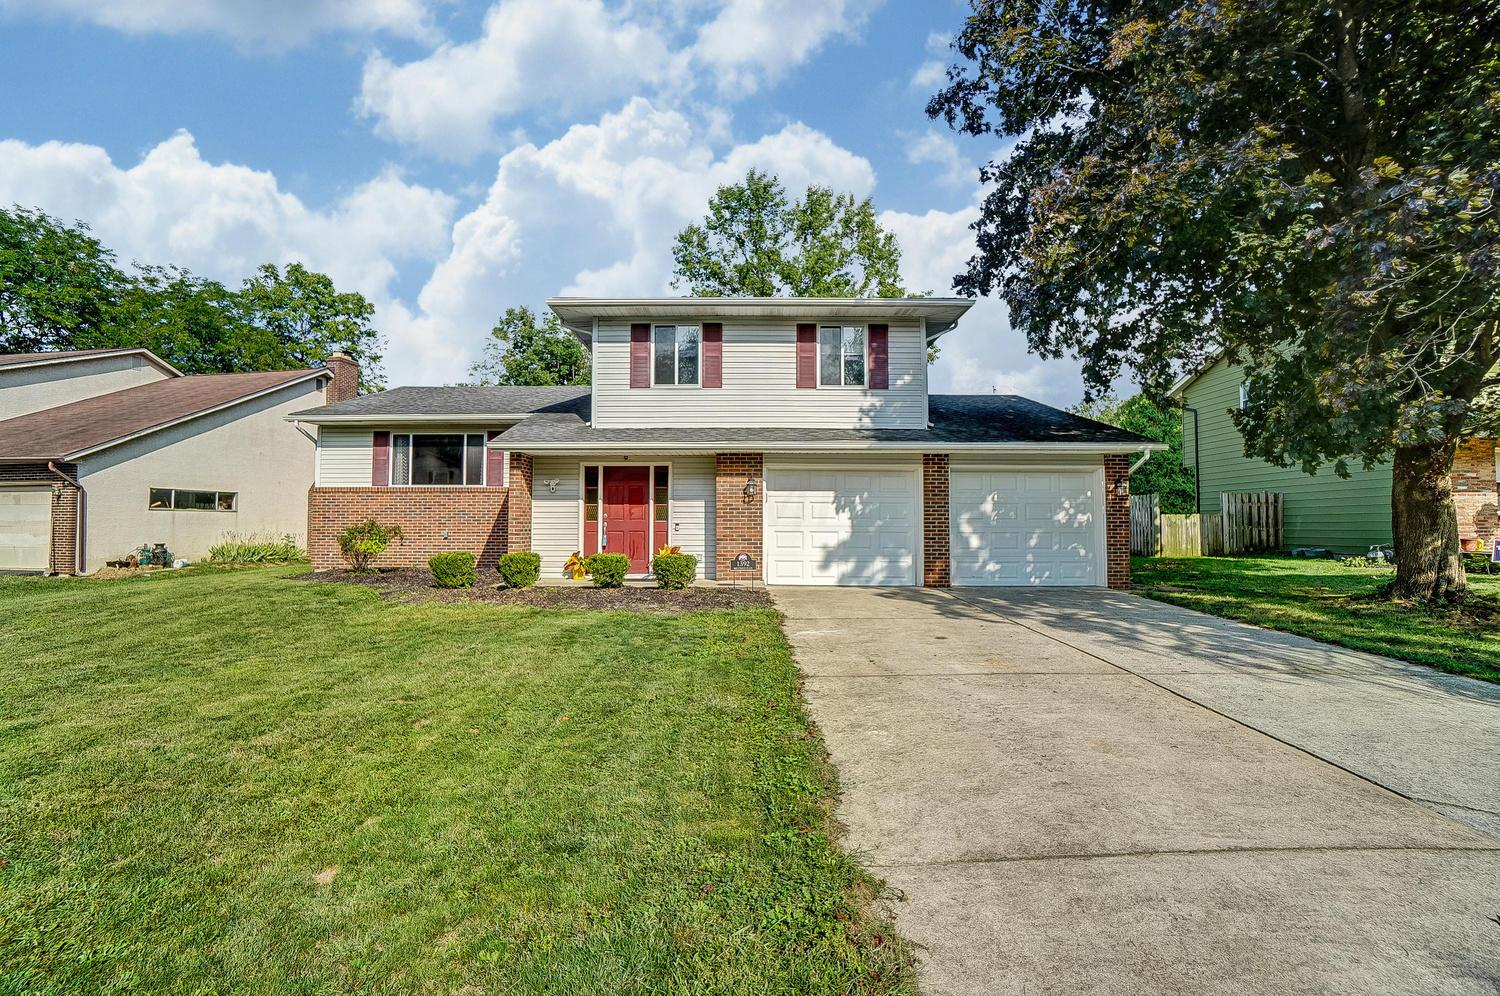 1392 Brenthaven Place, Columbus, Ohio 43228, 3 Bedrooms Bedrooms, ,3 BathroomsBathrooms,Residential,For Sale,Brenthaven,220031761